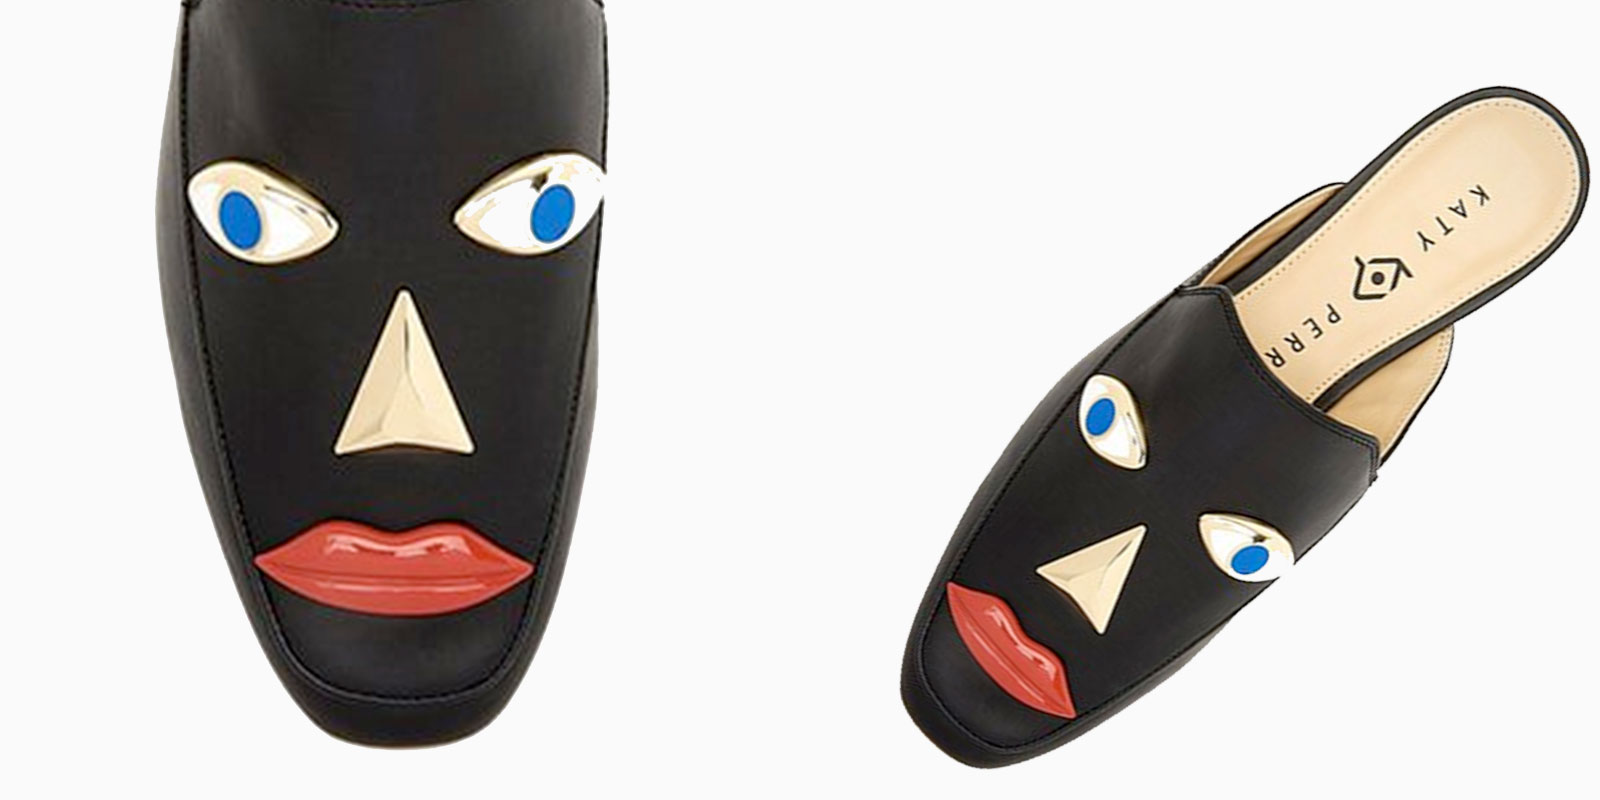 Katy Perry's blackface shoes pulled